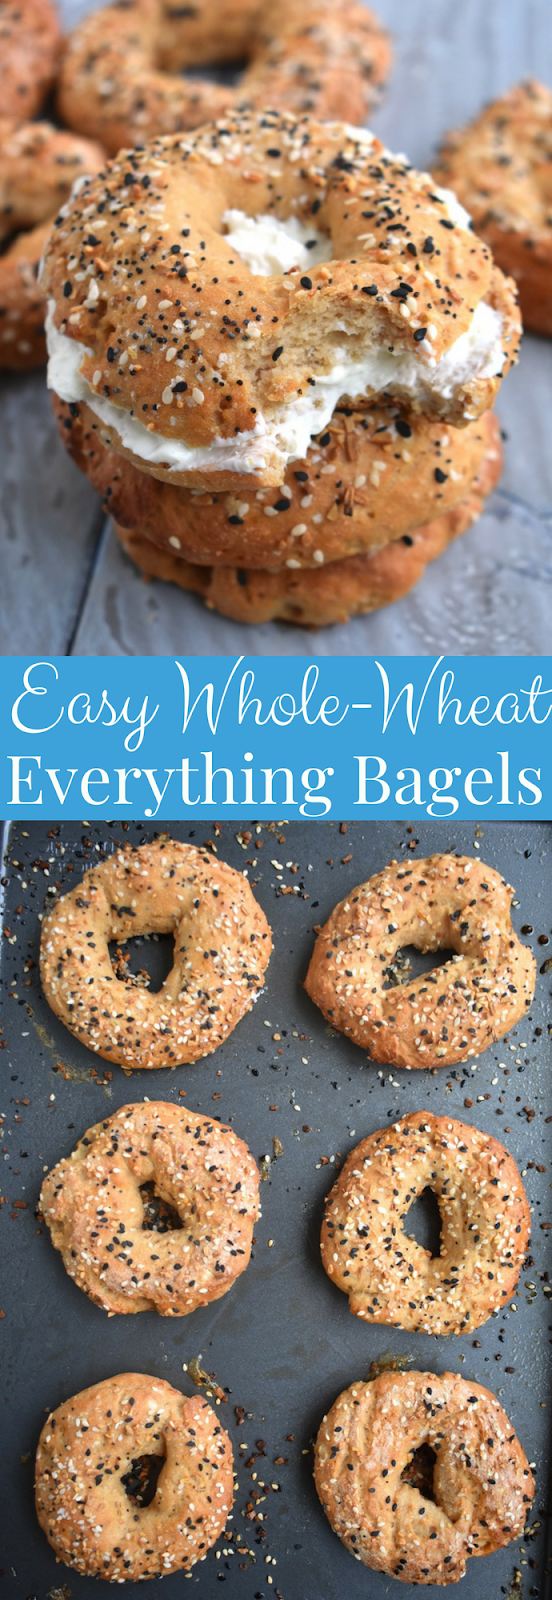 Easy Whole-Wheat Everything Bagels have just 6-ingredients, are made with Greek yogurt, don't require yeast or boiling, are made in the oven and can be made ahead of time and frozen! www.nutritionistreviews.com